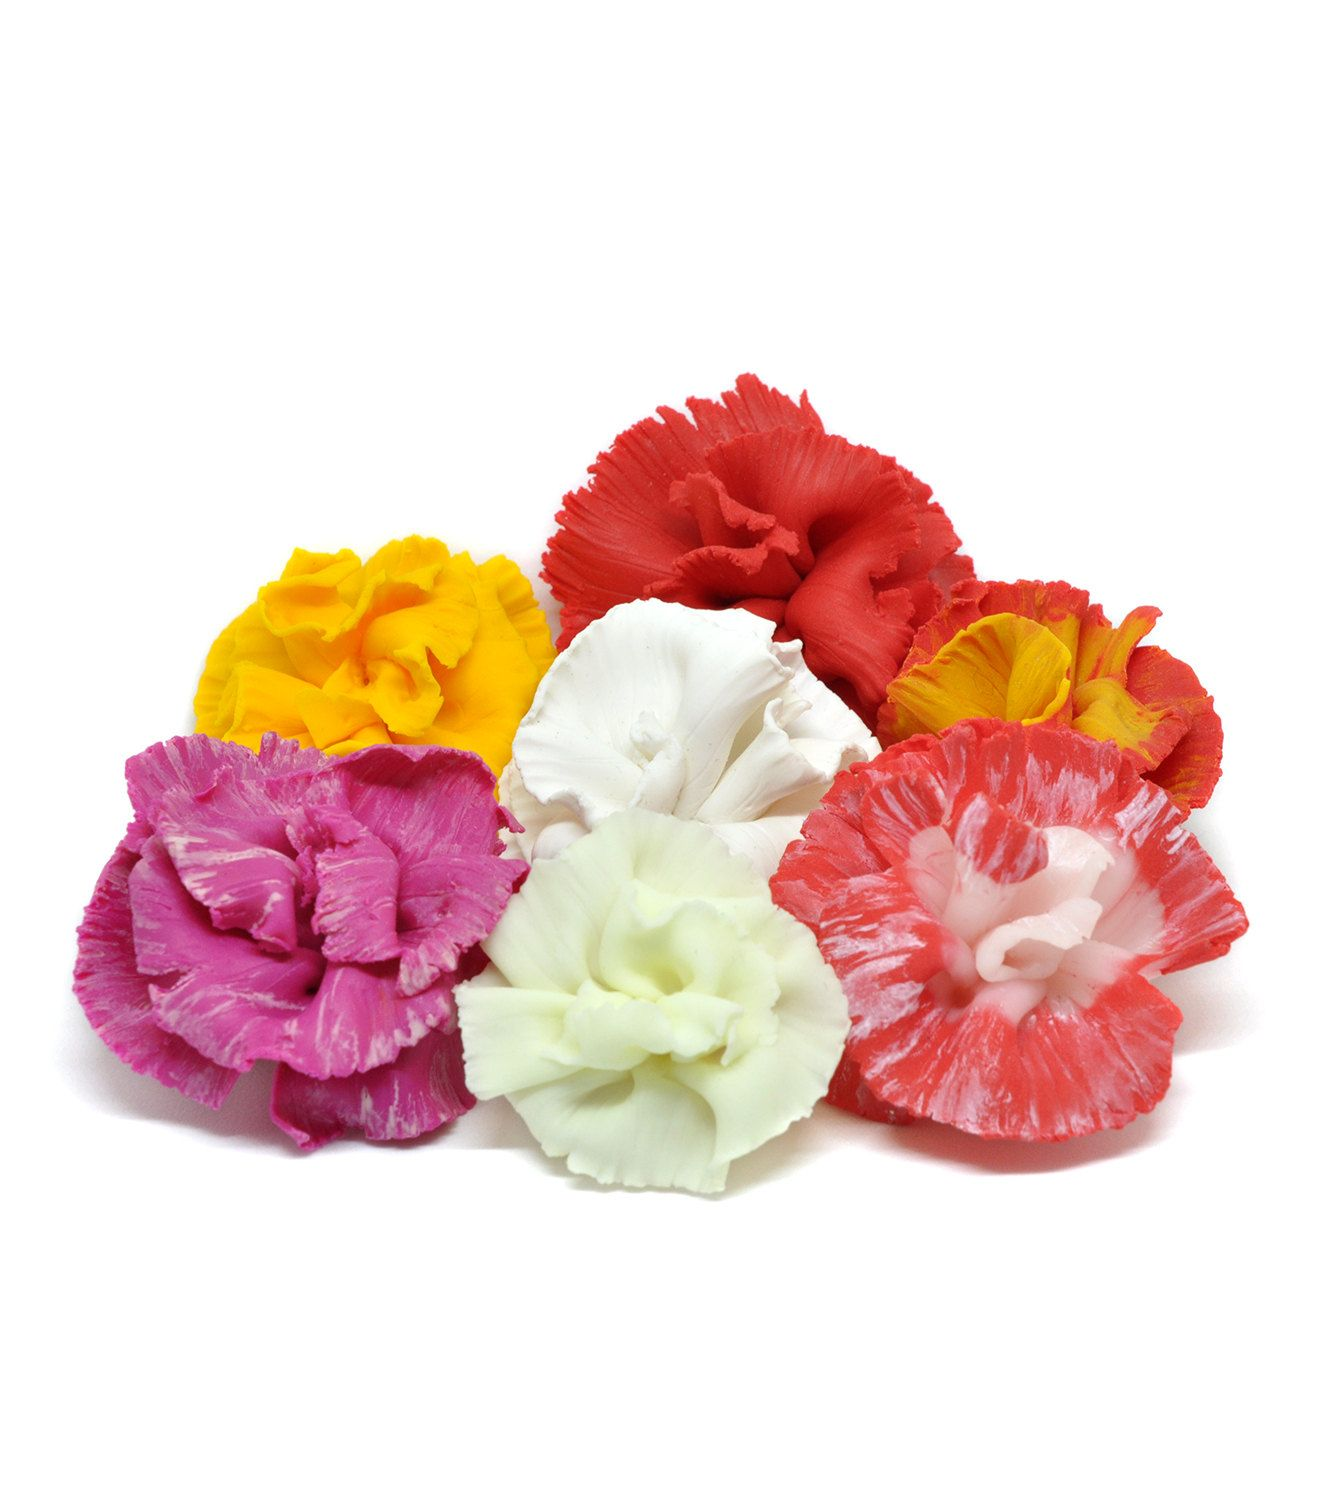 Carnation Brooch Pendant in Different Color Options 2 in 1 Polymer ...